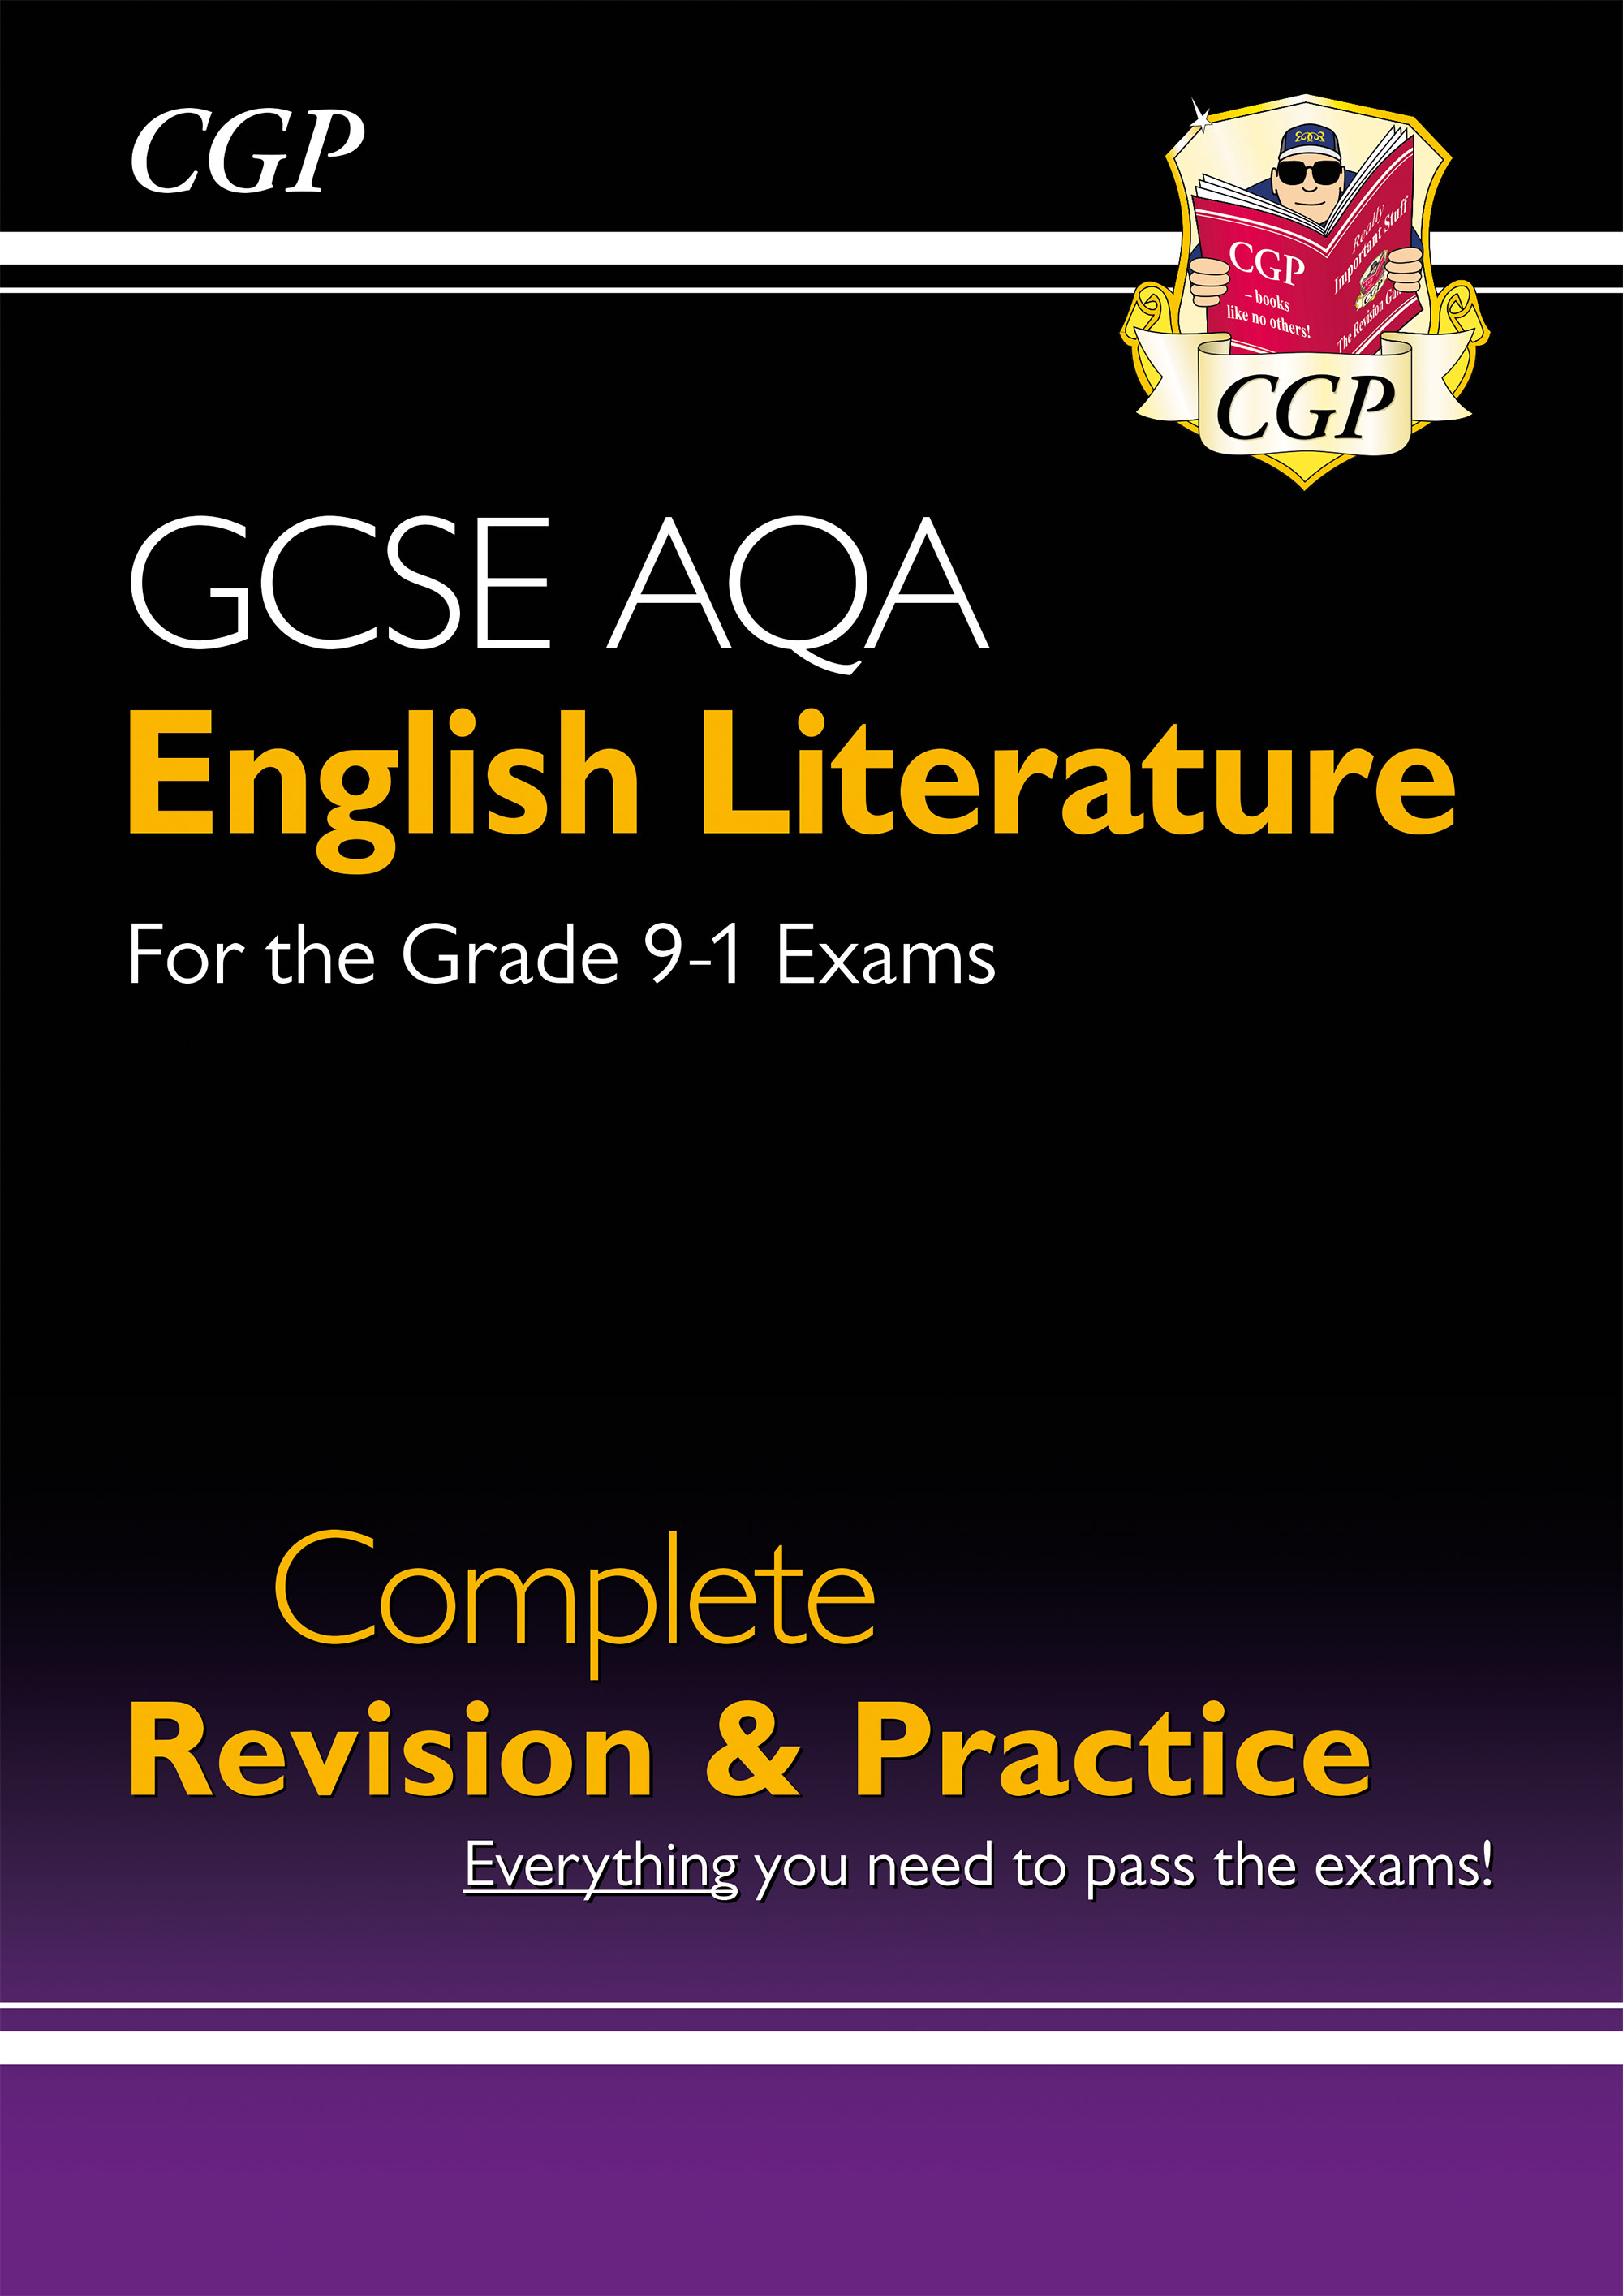 ELAS41DK - New GCSE English Literature AQA Complete Revision & Practice - Grade 9-1